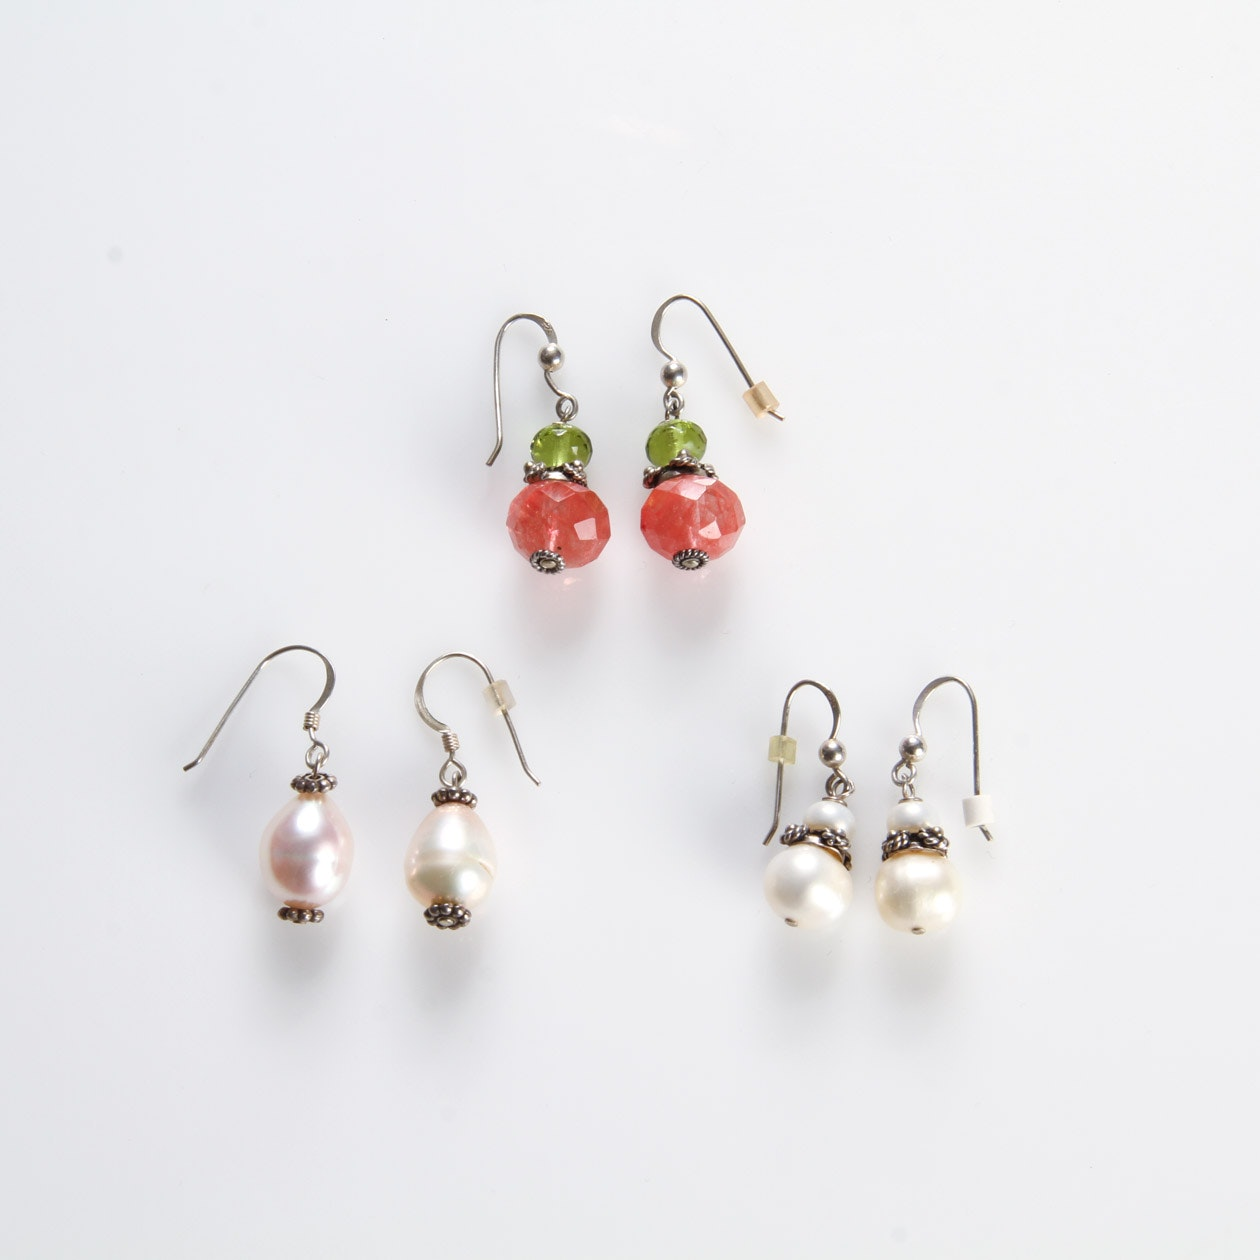 Assortment of Sterling Silver and Pearl Drop Earrings